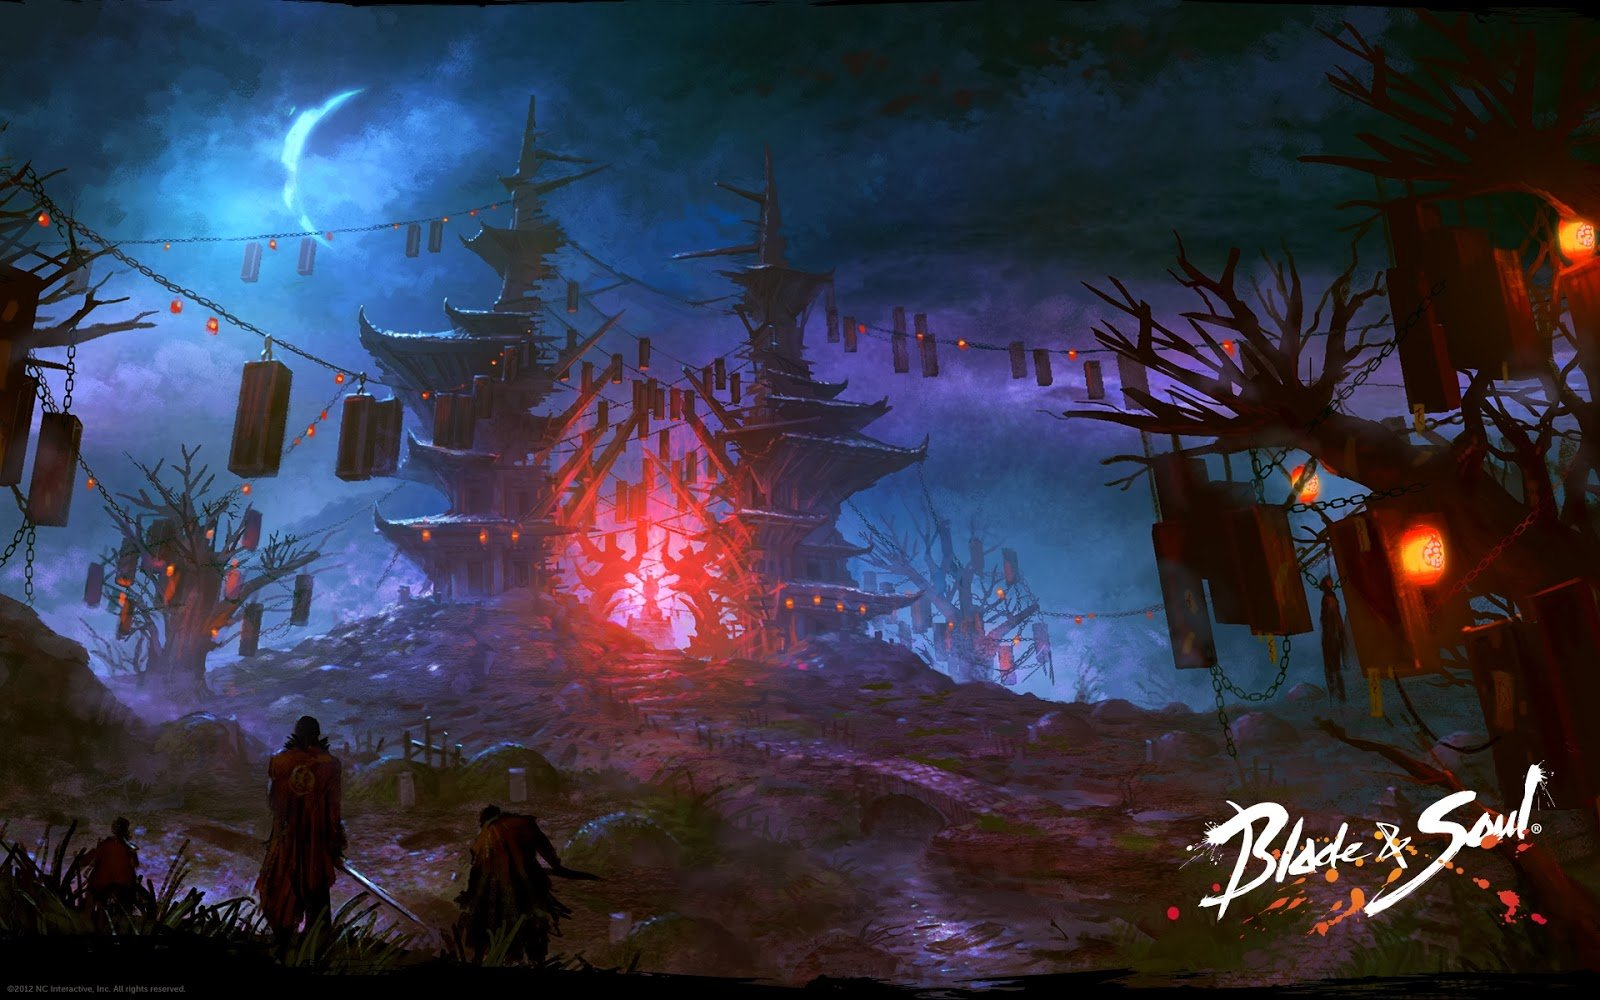 Blade and Soul Wallpapers NickWallpapercom HD Desktop 1600x1000